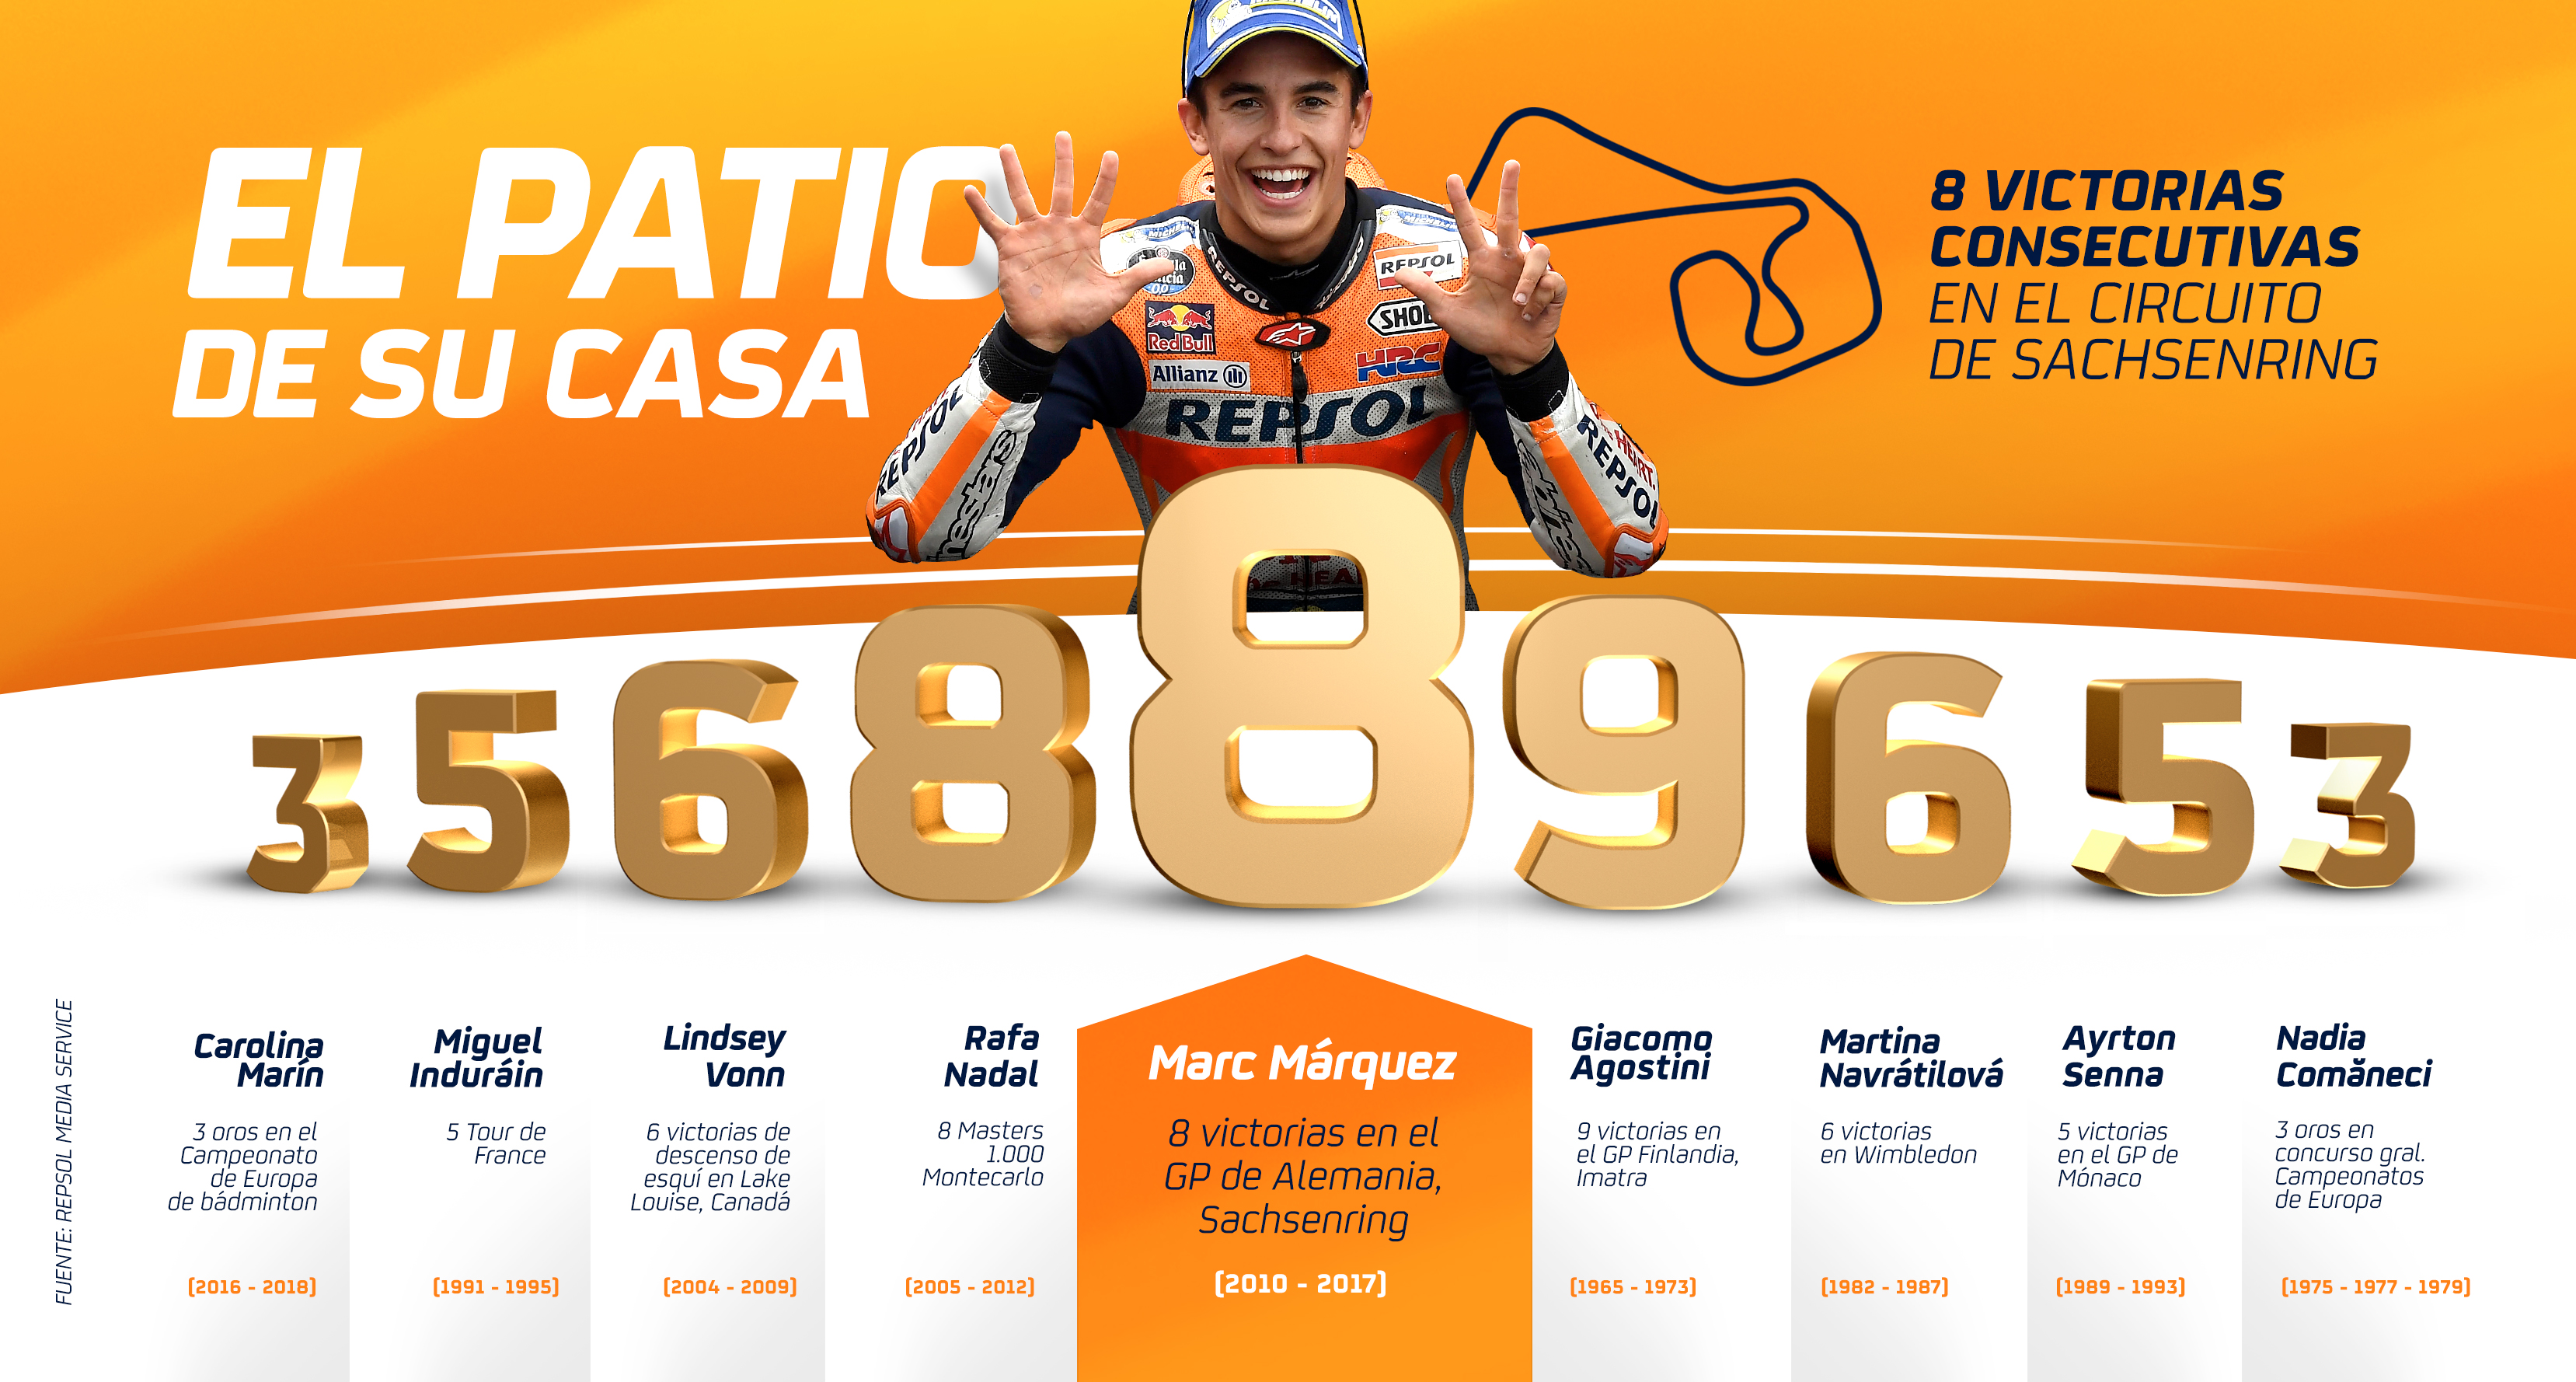 What do Marc Márquez, Ayrton Senna and Martina Navrátilová have in common?